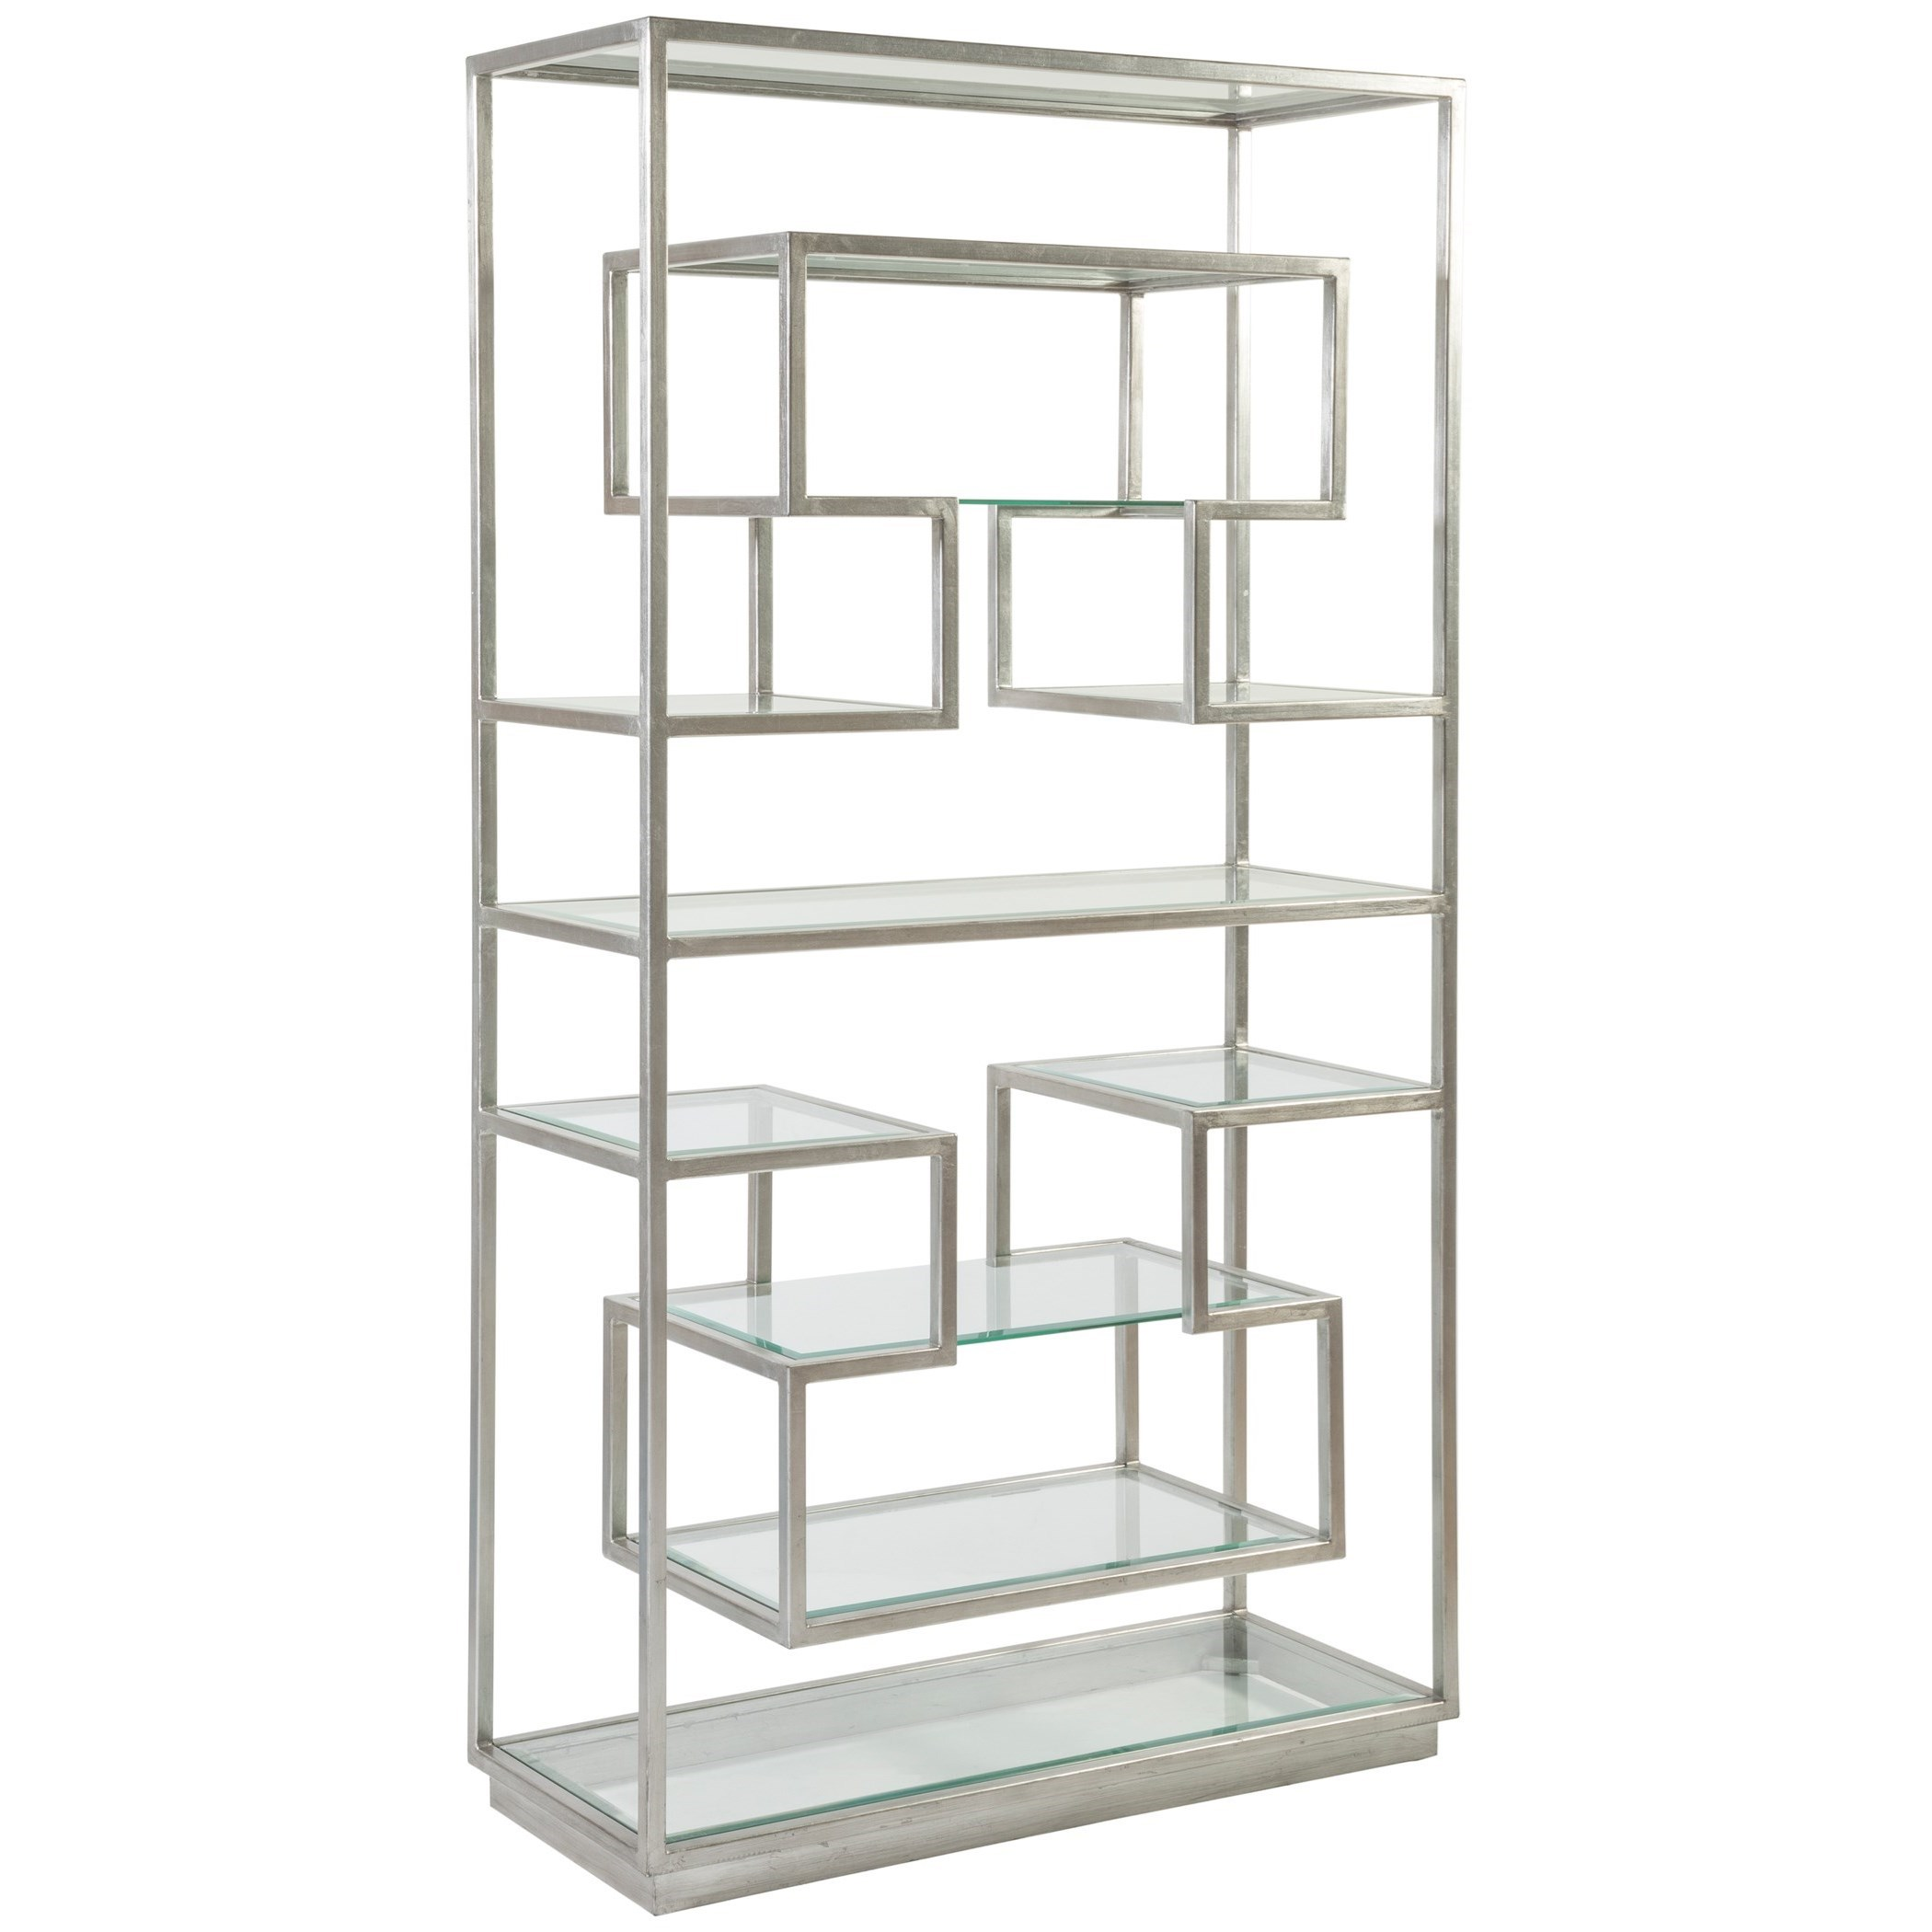 Metal Designs Holden Etagere by Artistica at Baer's Furniture